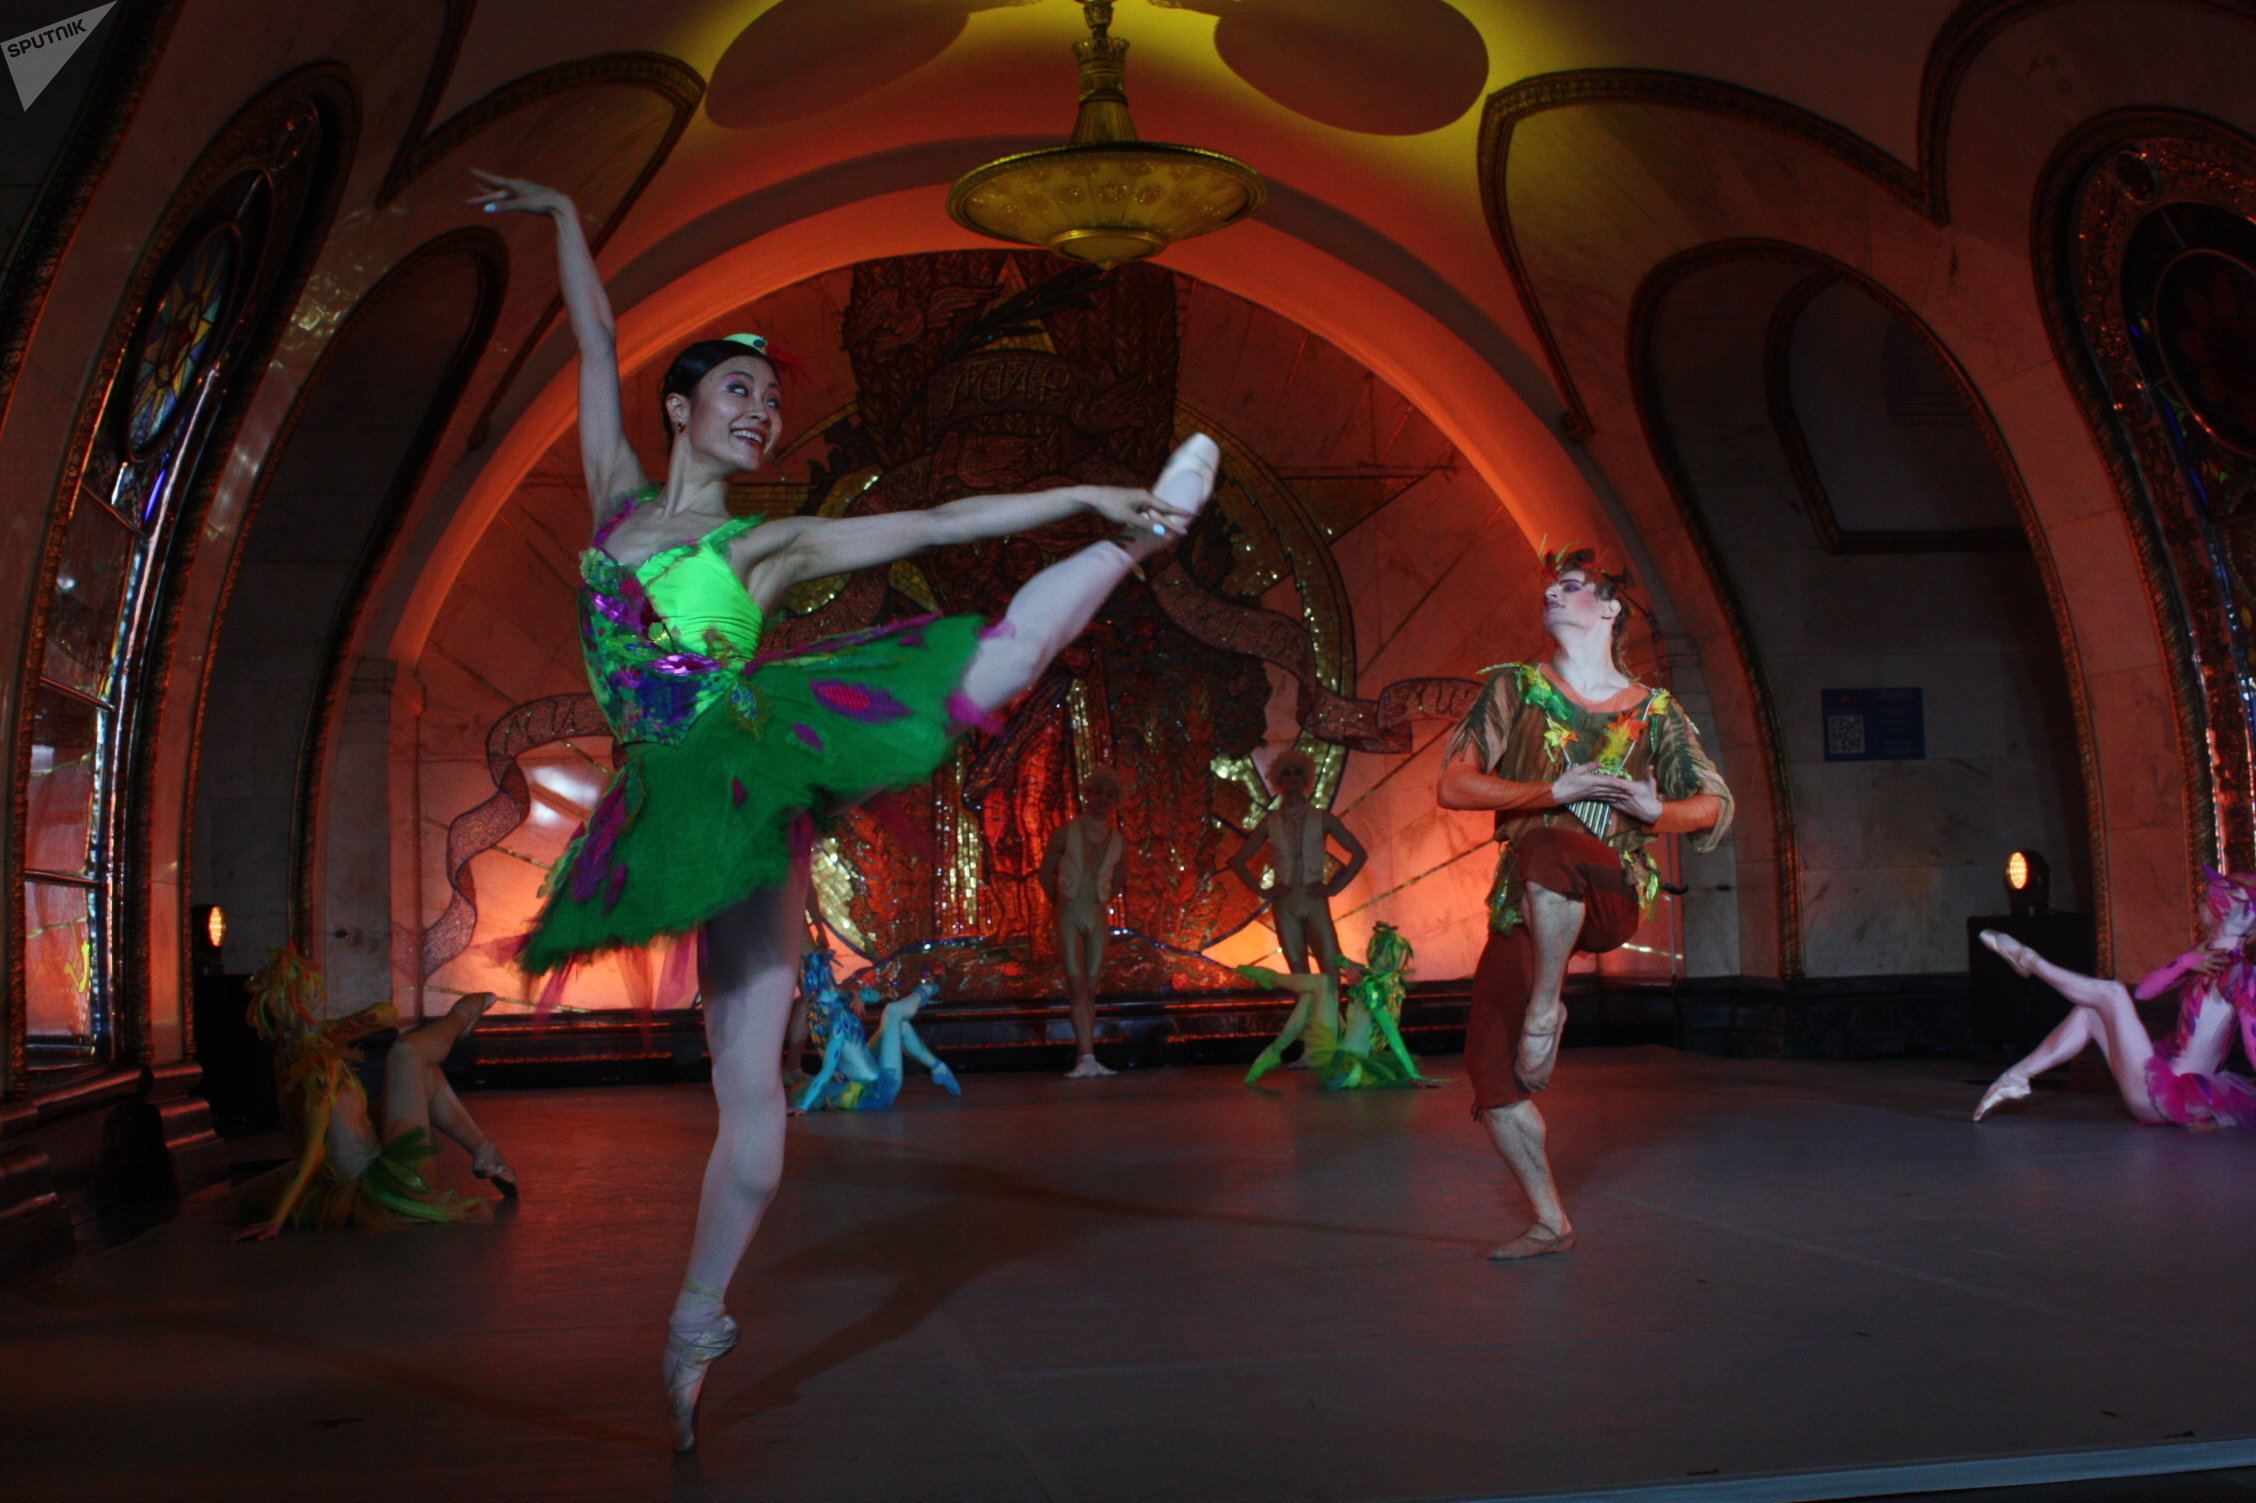 Dancers of the Kremlin Ballet perform parts of their best productions during the Russian Ballet Night at the Novoslobodskaya station of the Moscow Metro